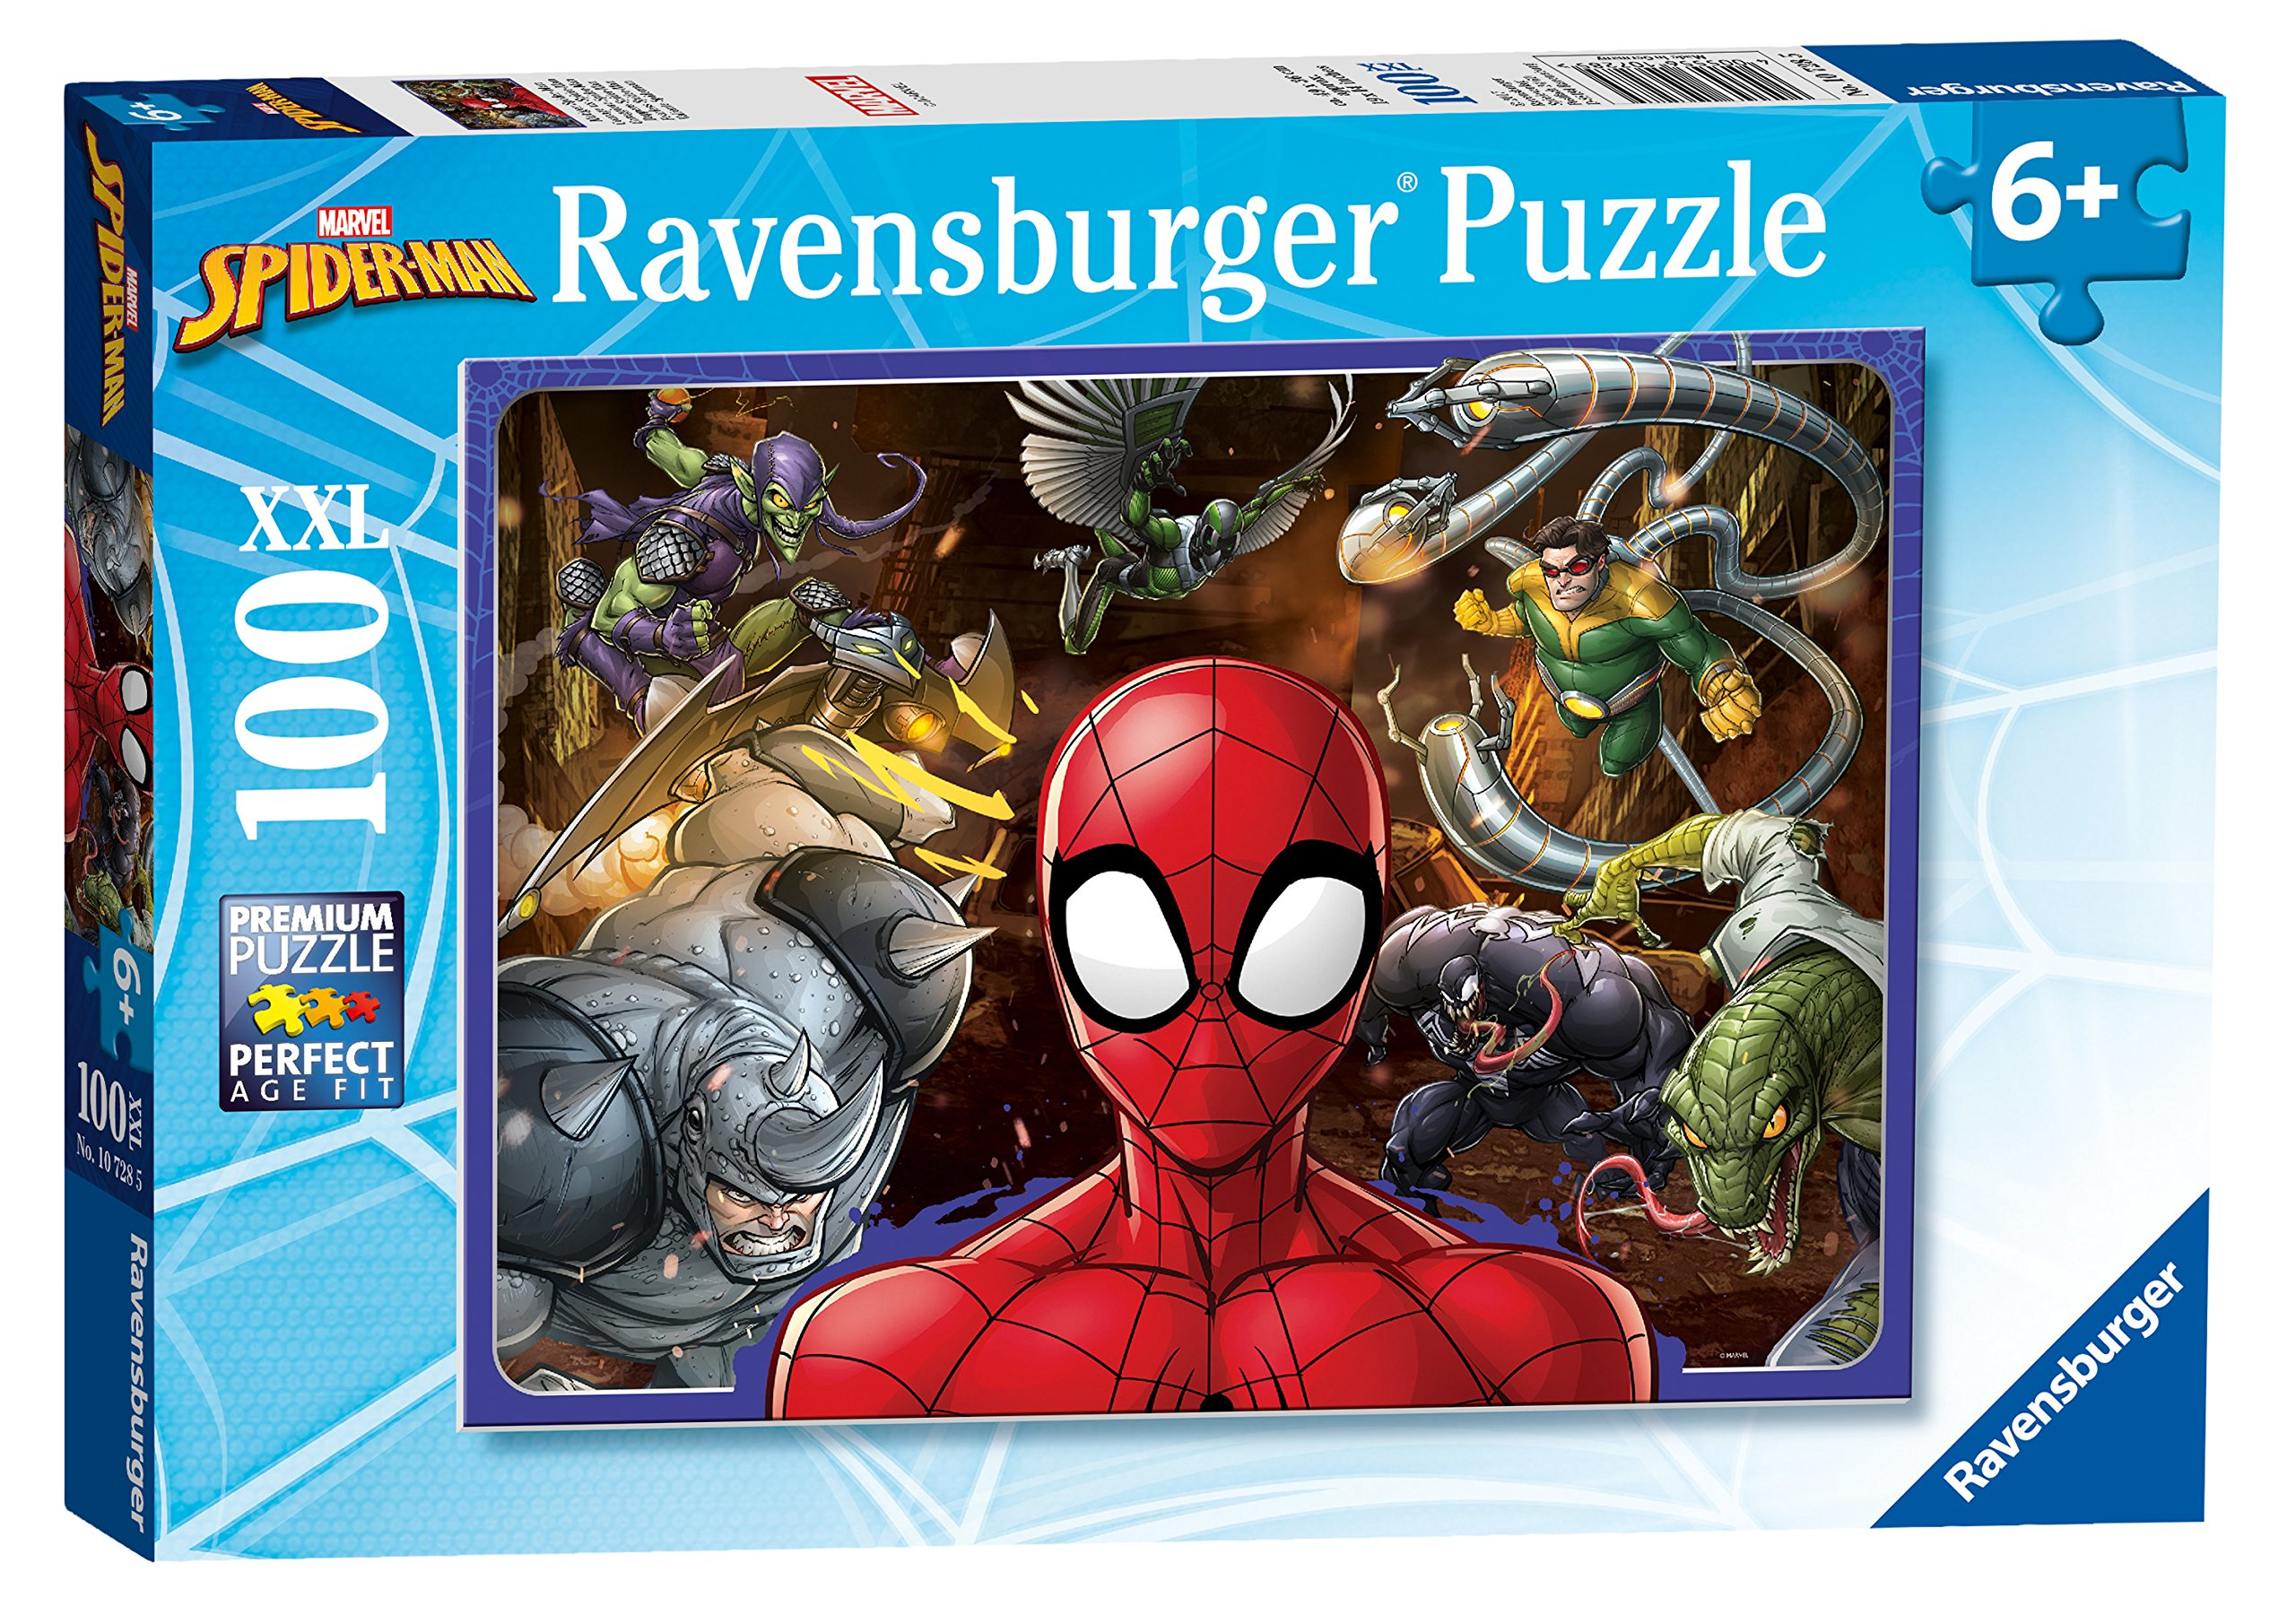 Ravensburger UK 10728 Spider-Man Spiderman Marvel Spiderman-100 Jigsaw Puzzle with Extra Pieces for Kids Age 6 Years and up, 2X-Large